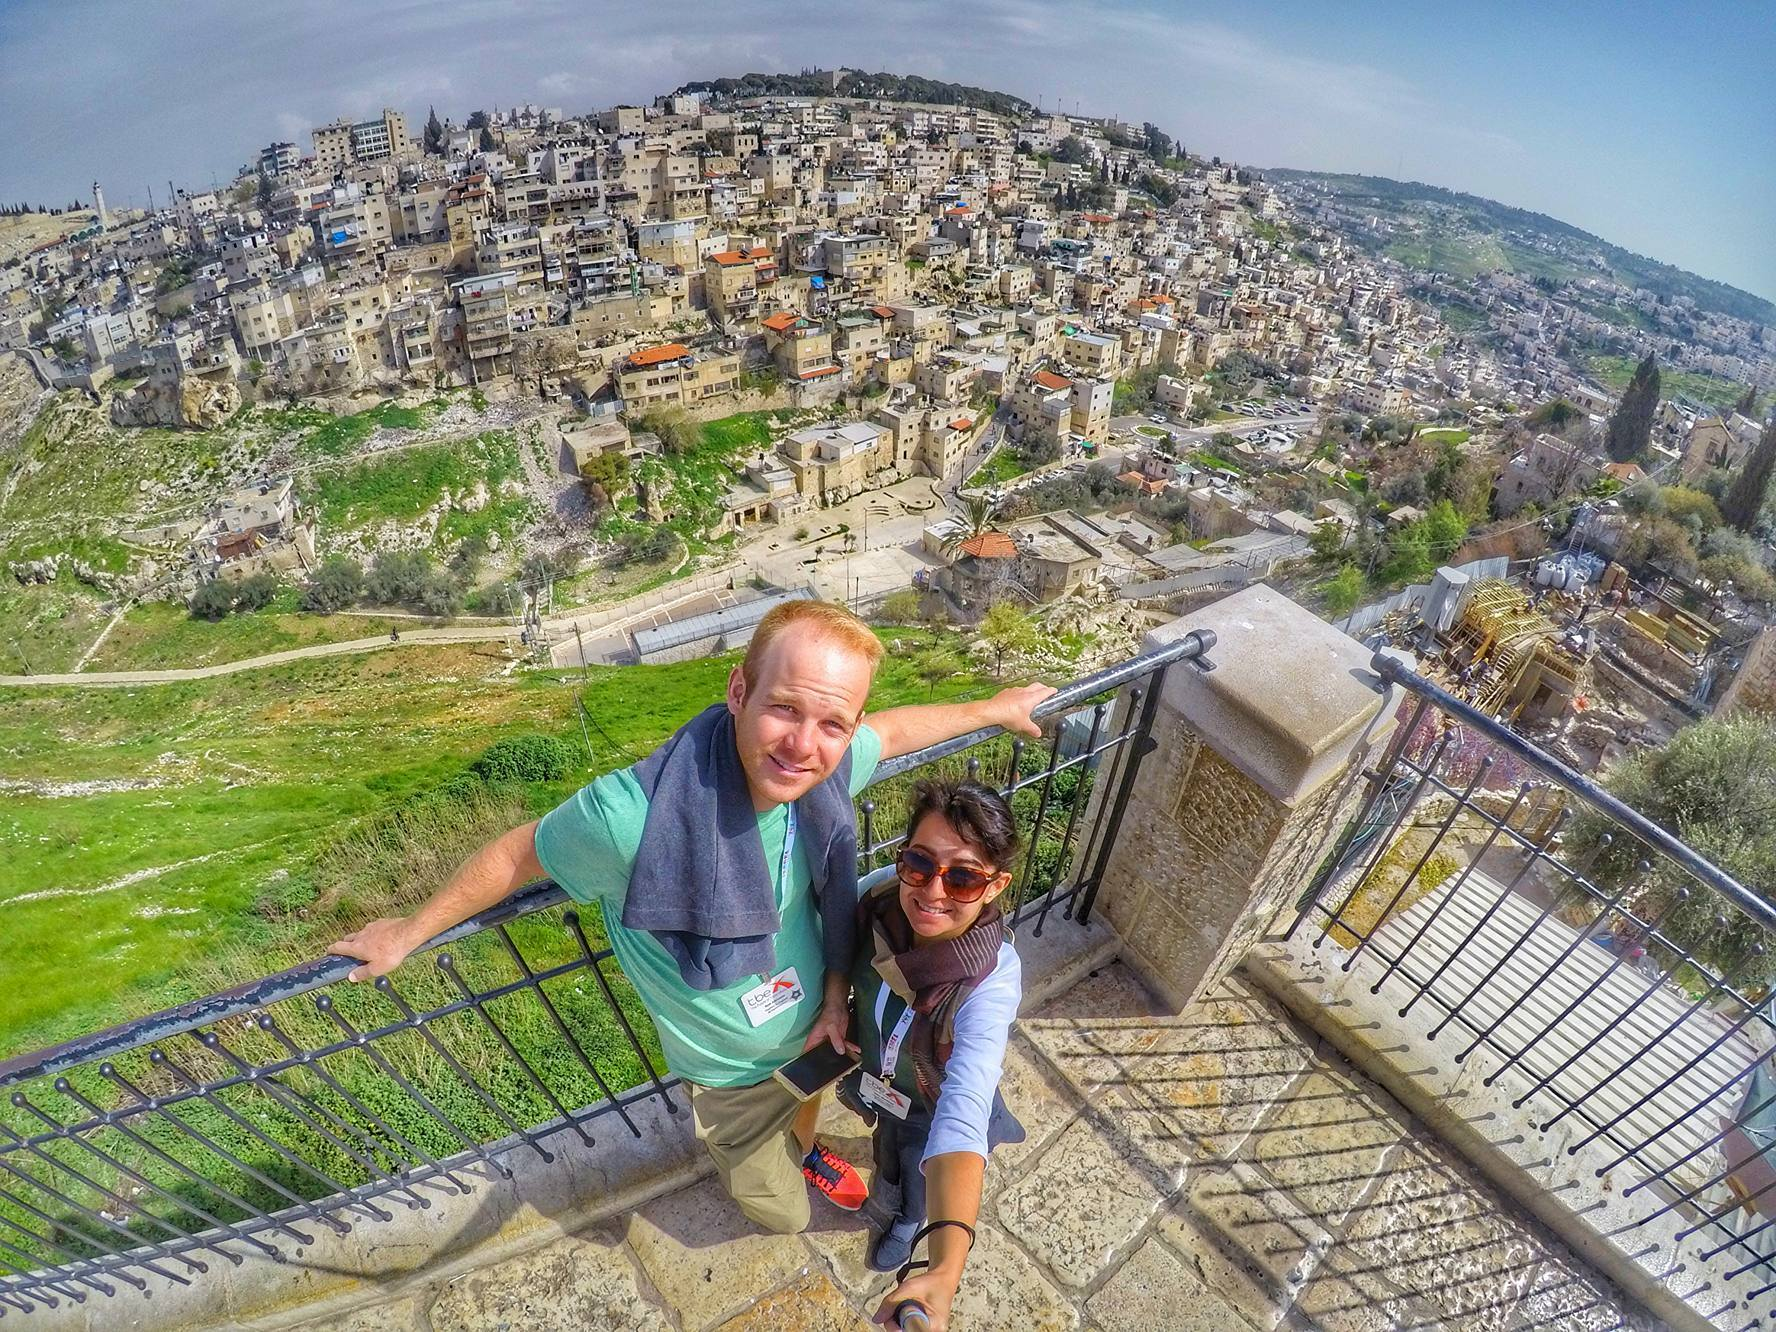 City Of David - Things to see in Jerusalem, Israel